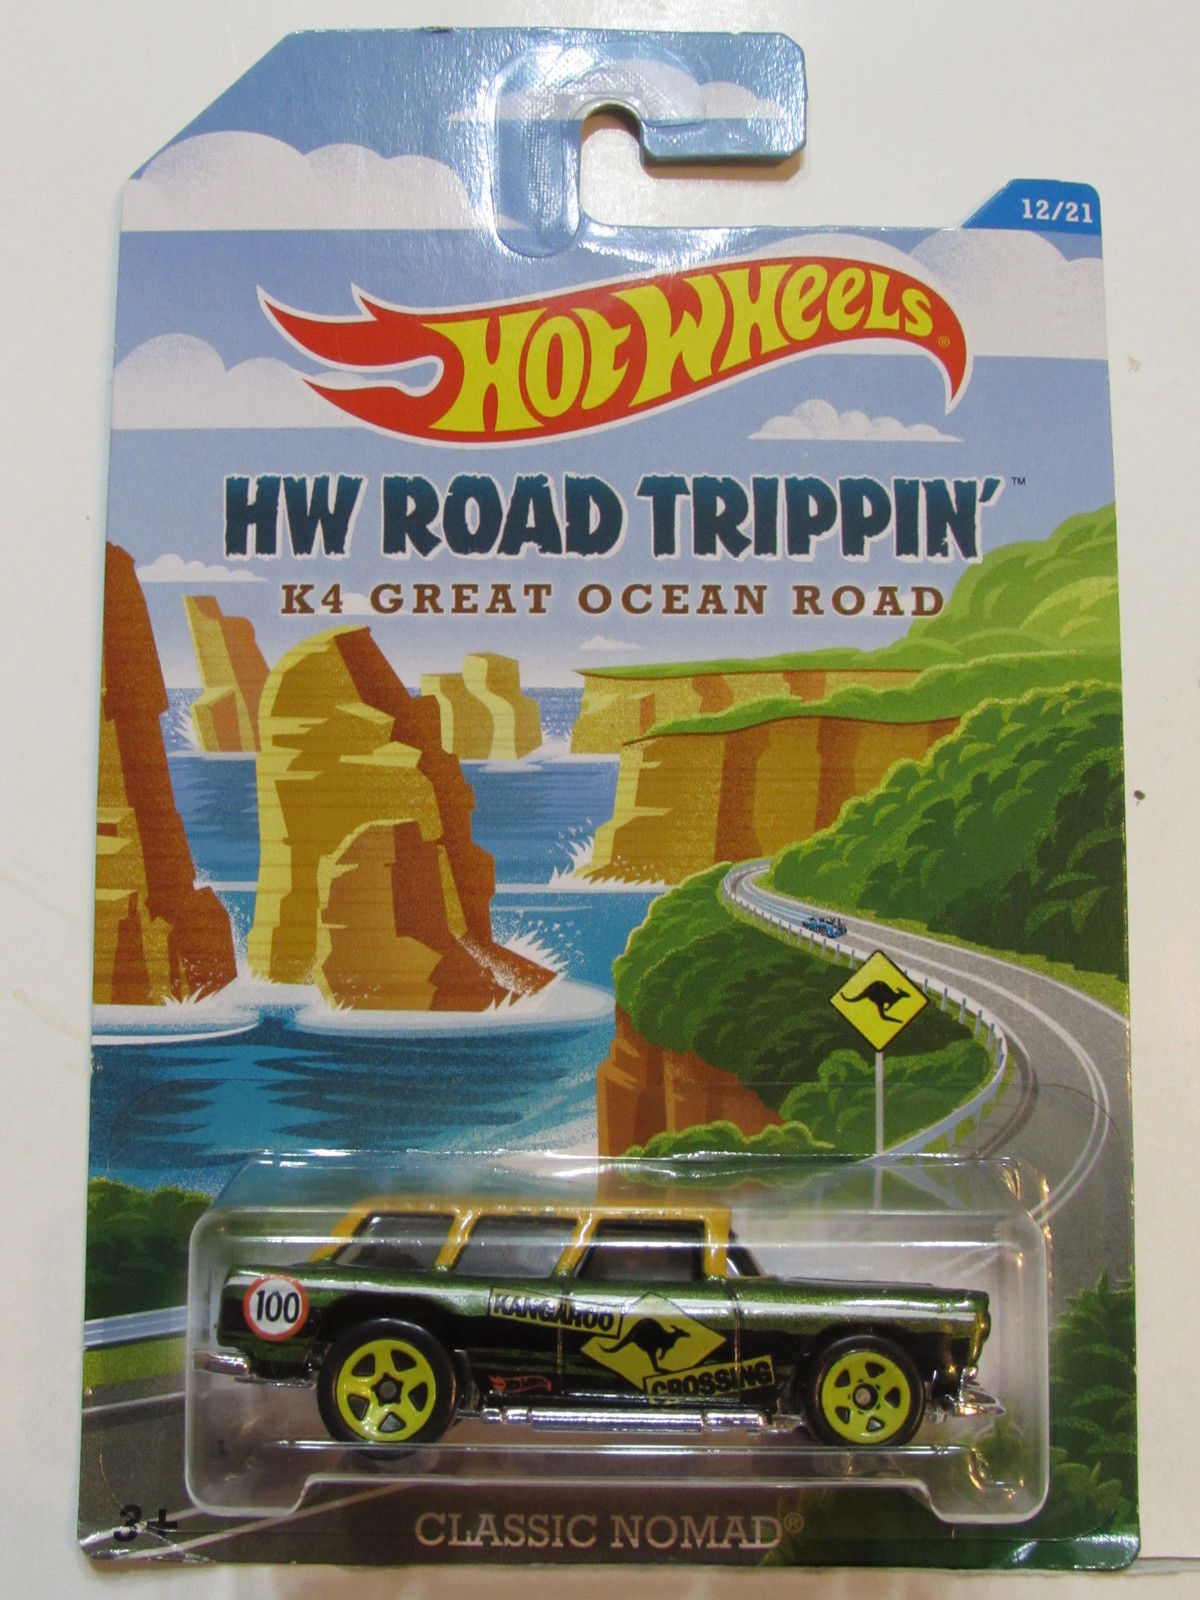 HOT WHEELS HW ROAD TRIPPIN' K 4 GREAT OCEAN ROAD - CLASSIC NOMAD